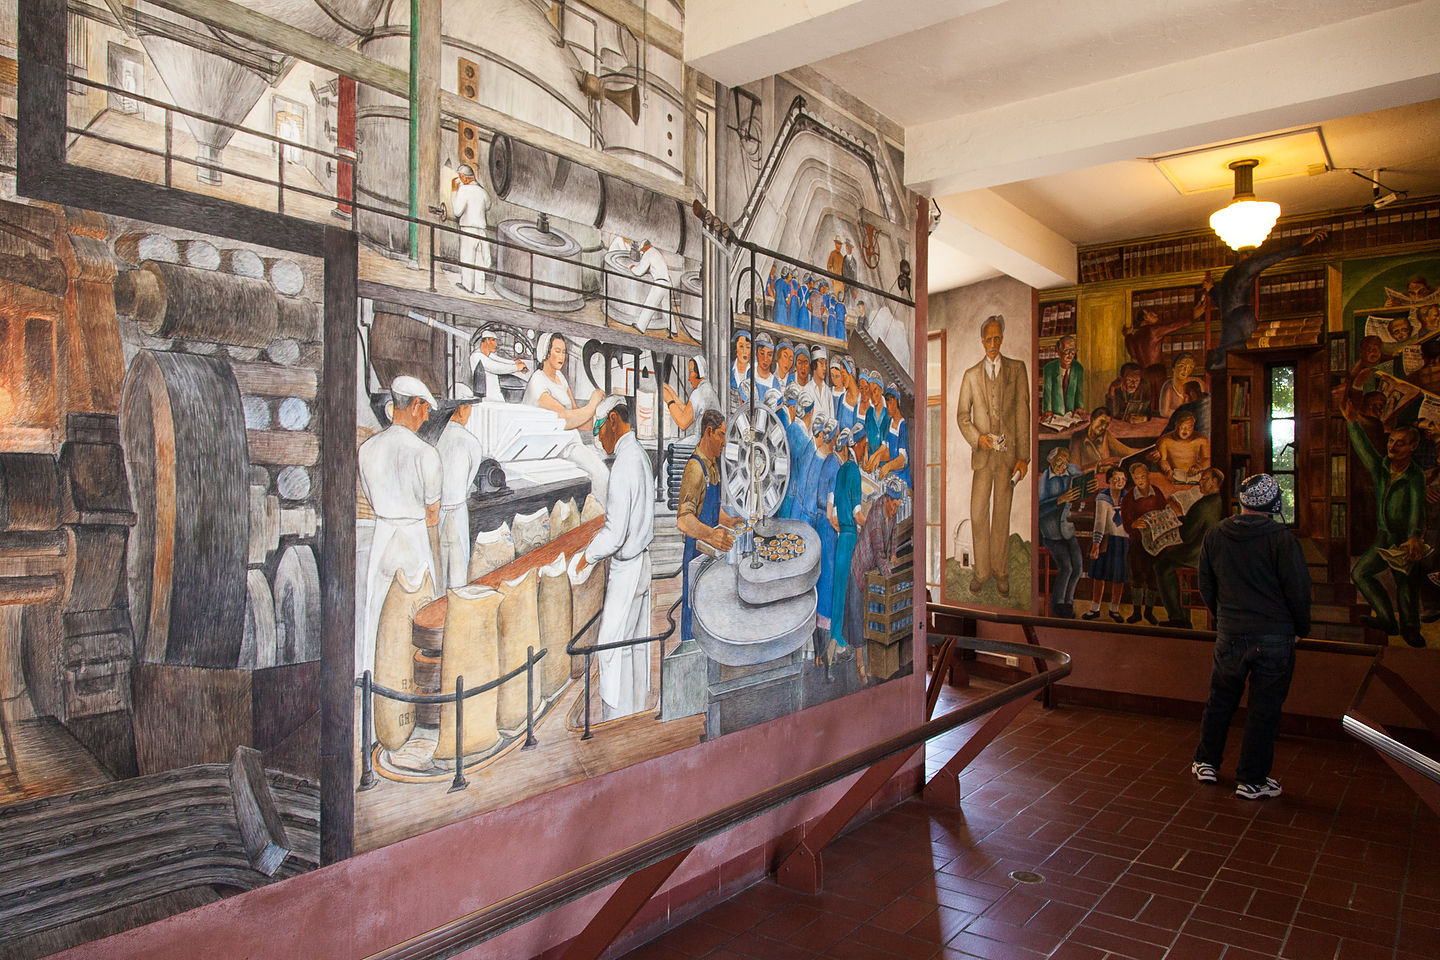 Coit Tower Public Works Murals